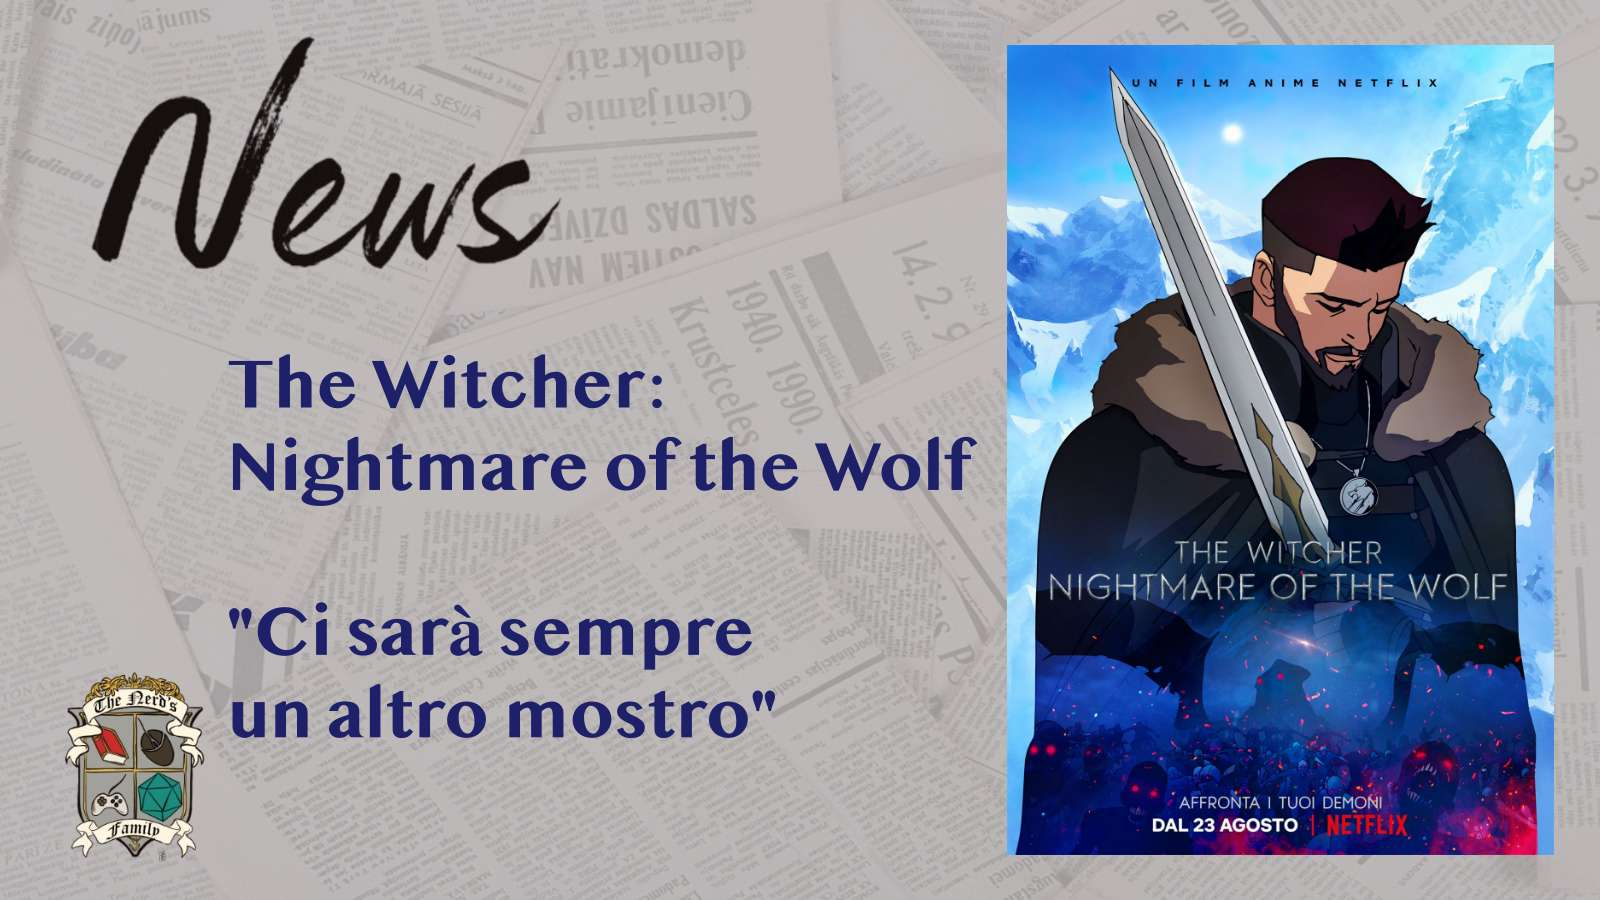 The Witcher: Nightmare